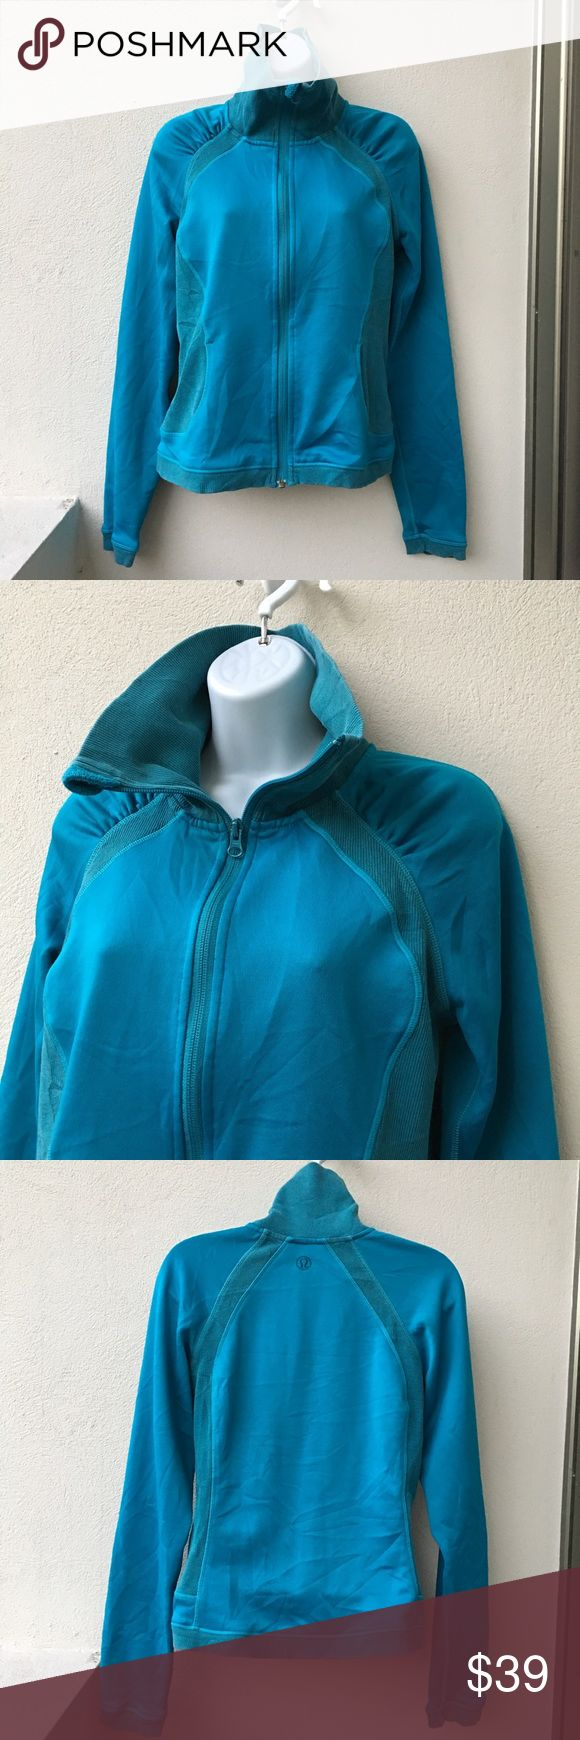 Lululemon Aqua Full Zipup Jacket size 6 Preowned Lululemon Aqua Full Zip Jacket size 6. Has thumbholes. Light jacket. Signs of loving wear. Please look at pictures for better reference. Happy shopping! lululemon athletica Tops Sweatshirts & Hoodies